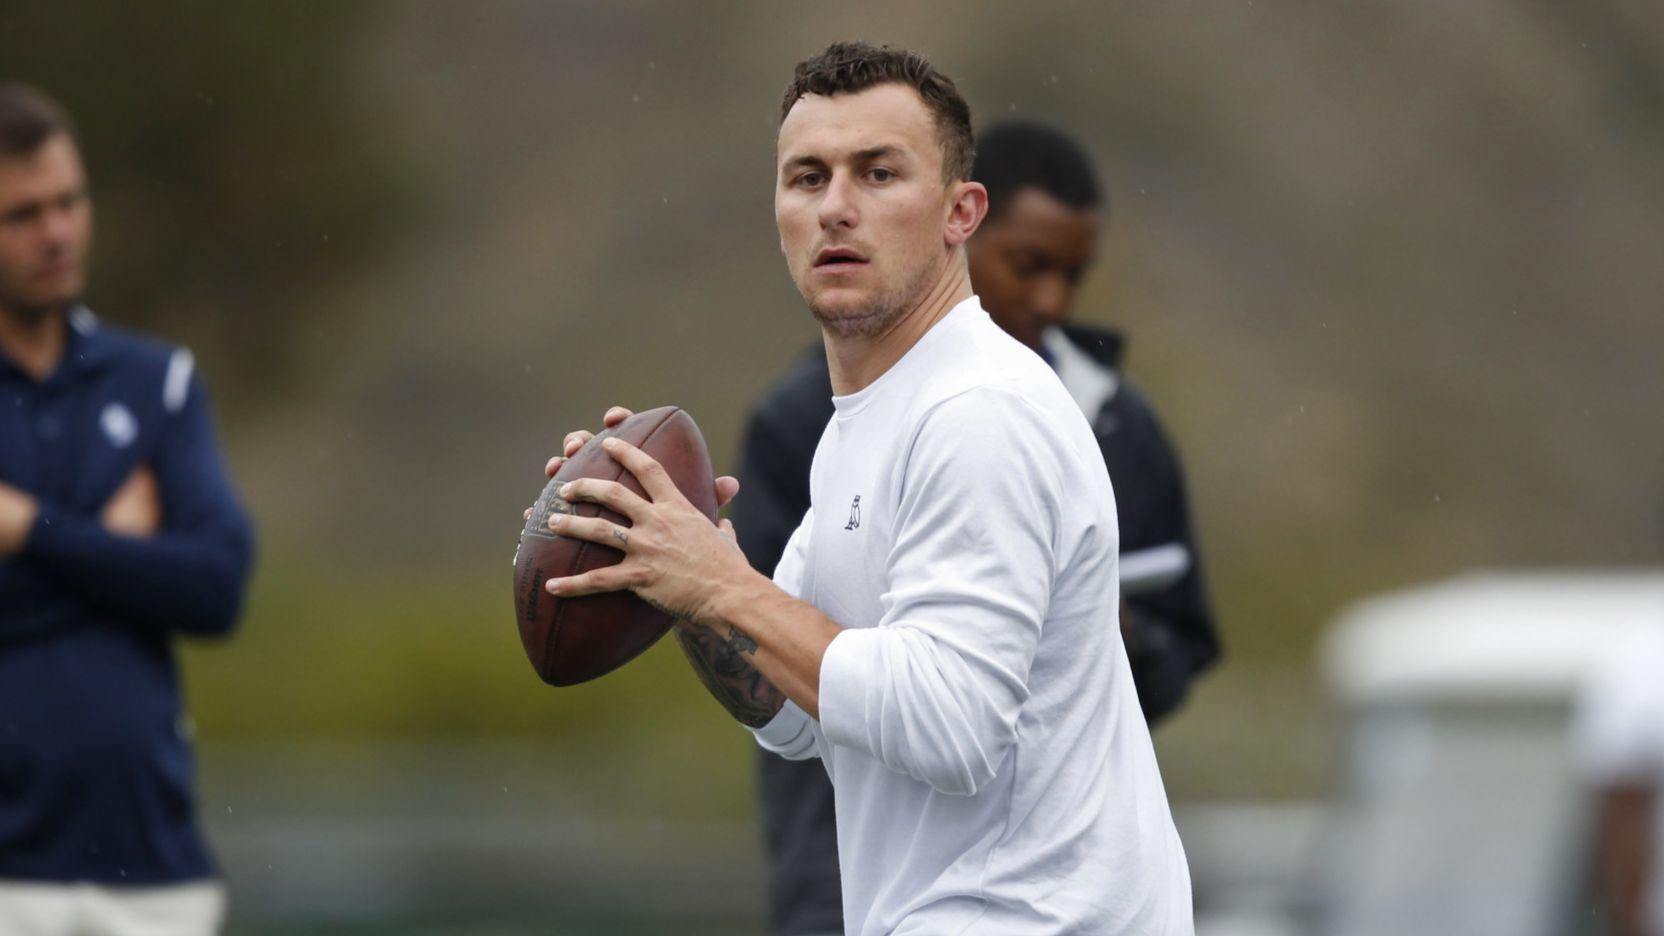 Johnny Manziel Attracts Large Nfl Turnout To Usd Pro Day